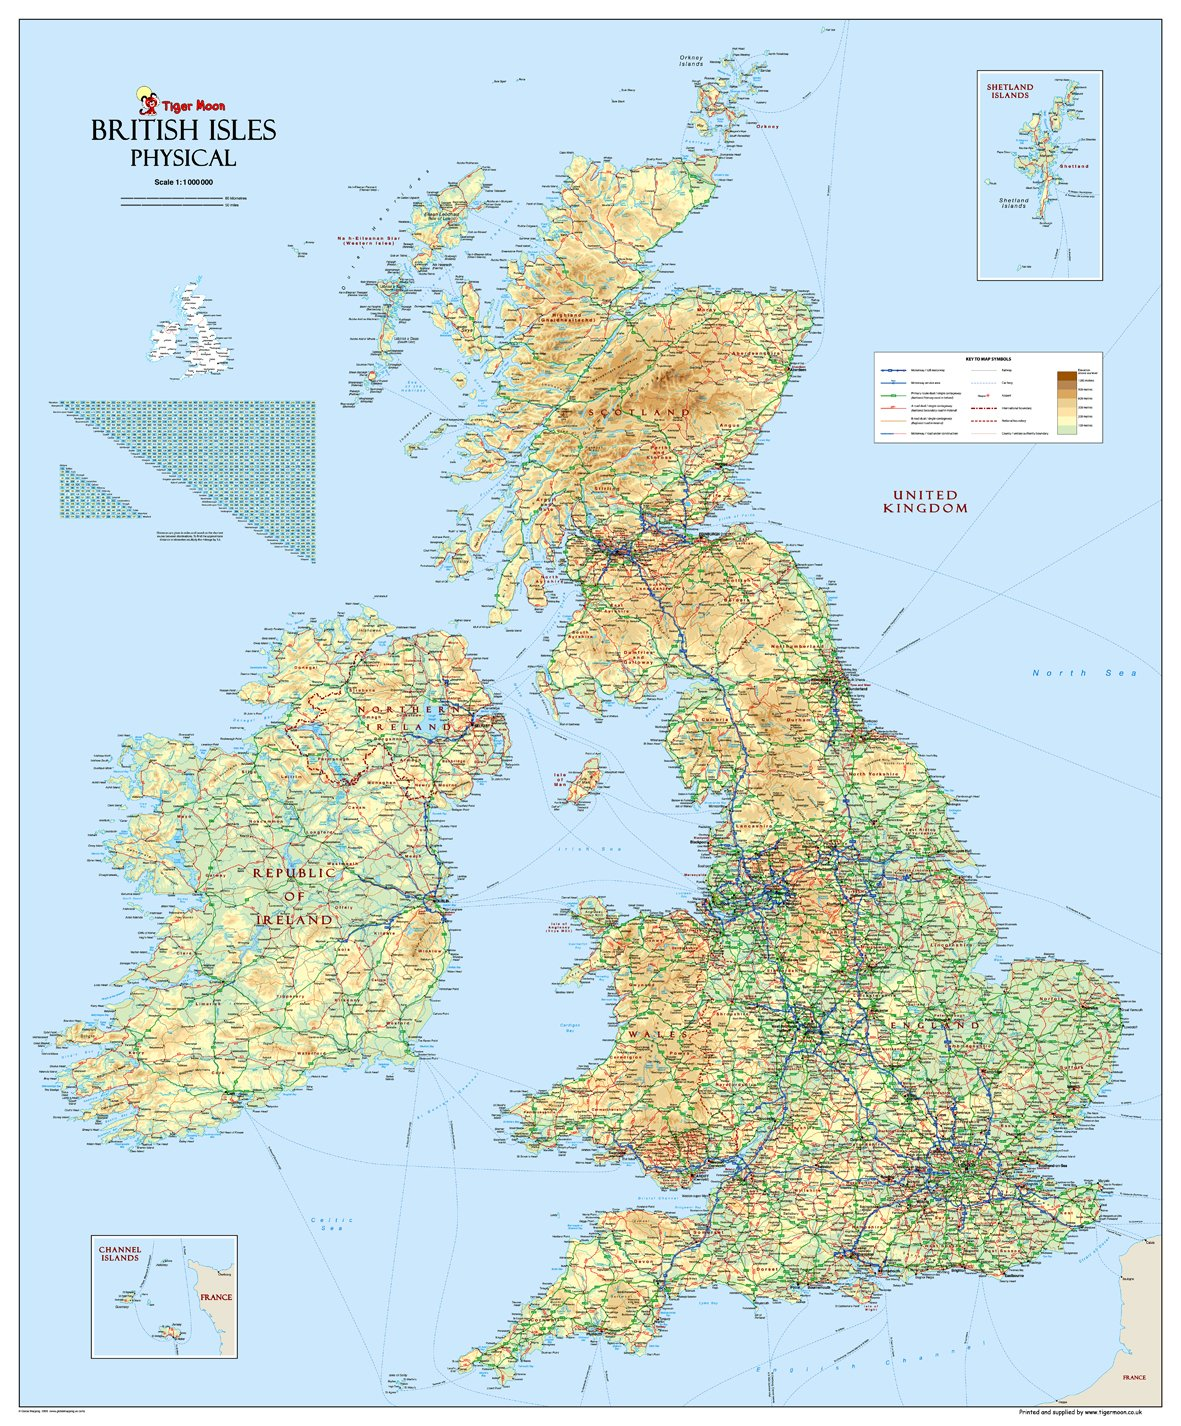 Large British Isles UK Physical Map  Paper Laminated 120 x 100 cm